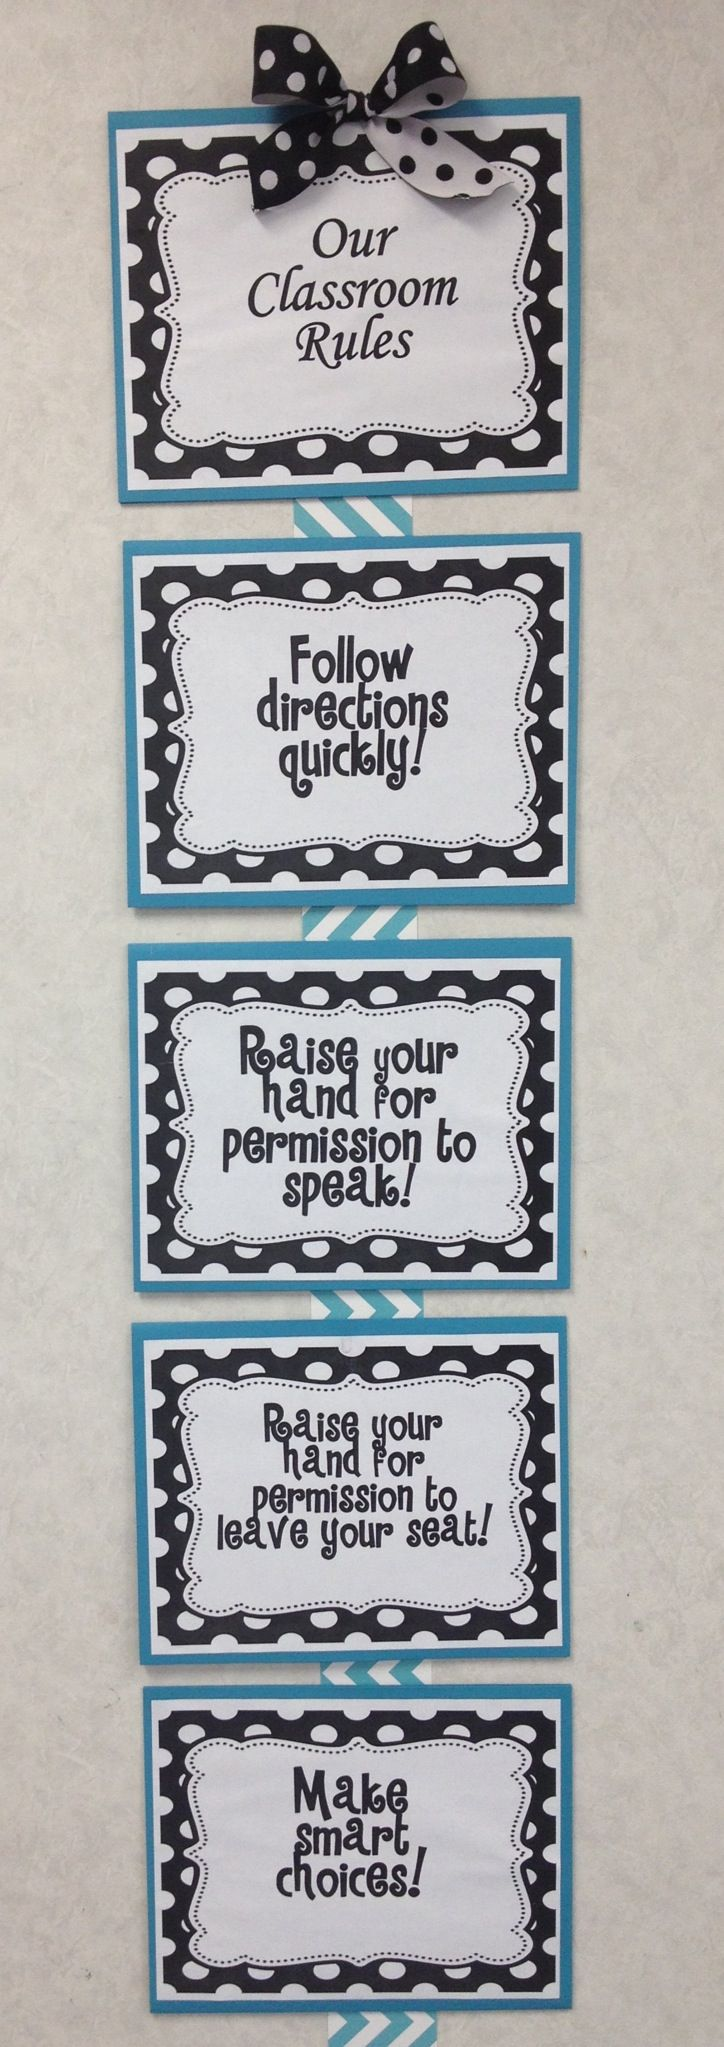 Whole Brain Teaching Chevron and Polka Dot Classroom Rules from Teachers Pay Teachers I printed for my third grade class this year.